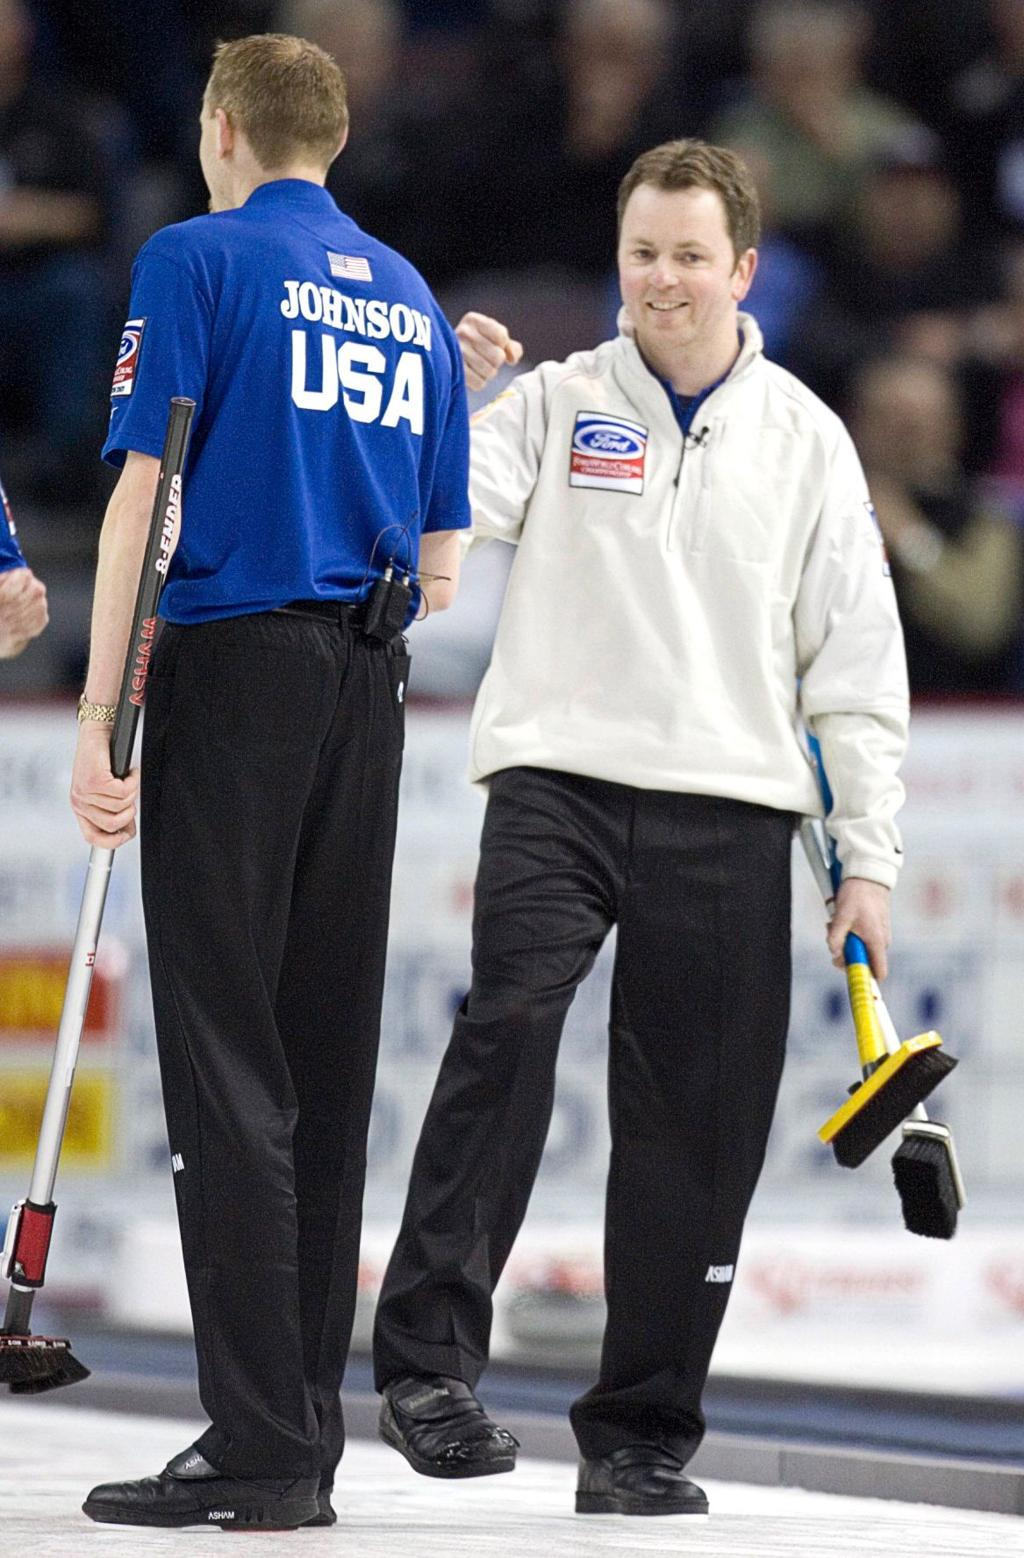 Birr brothers advance to world curling medal round | Sports